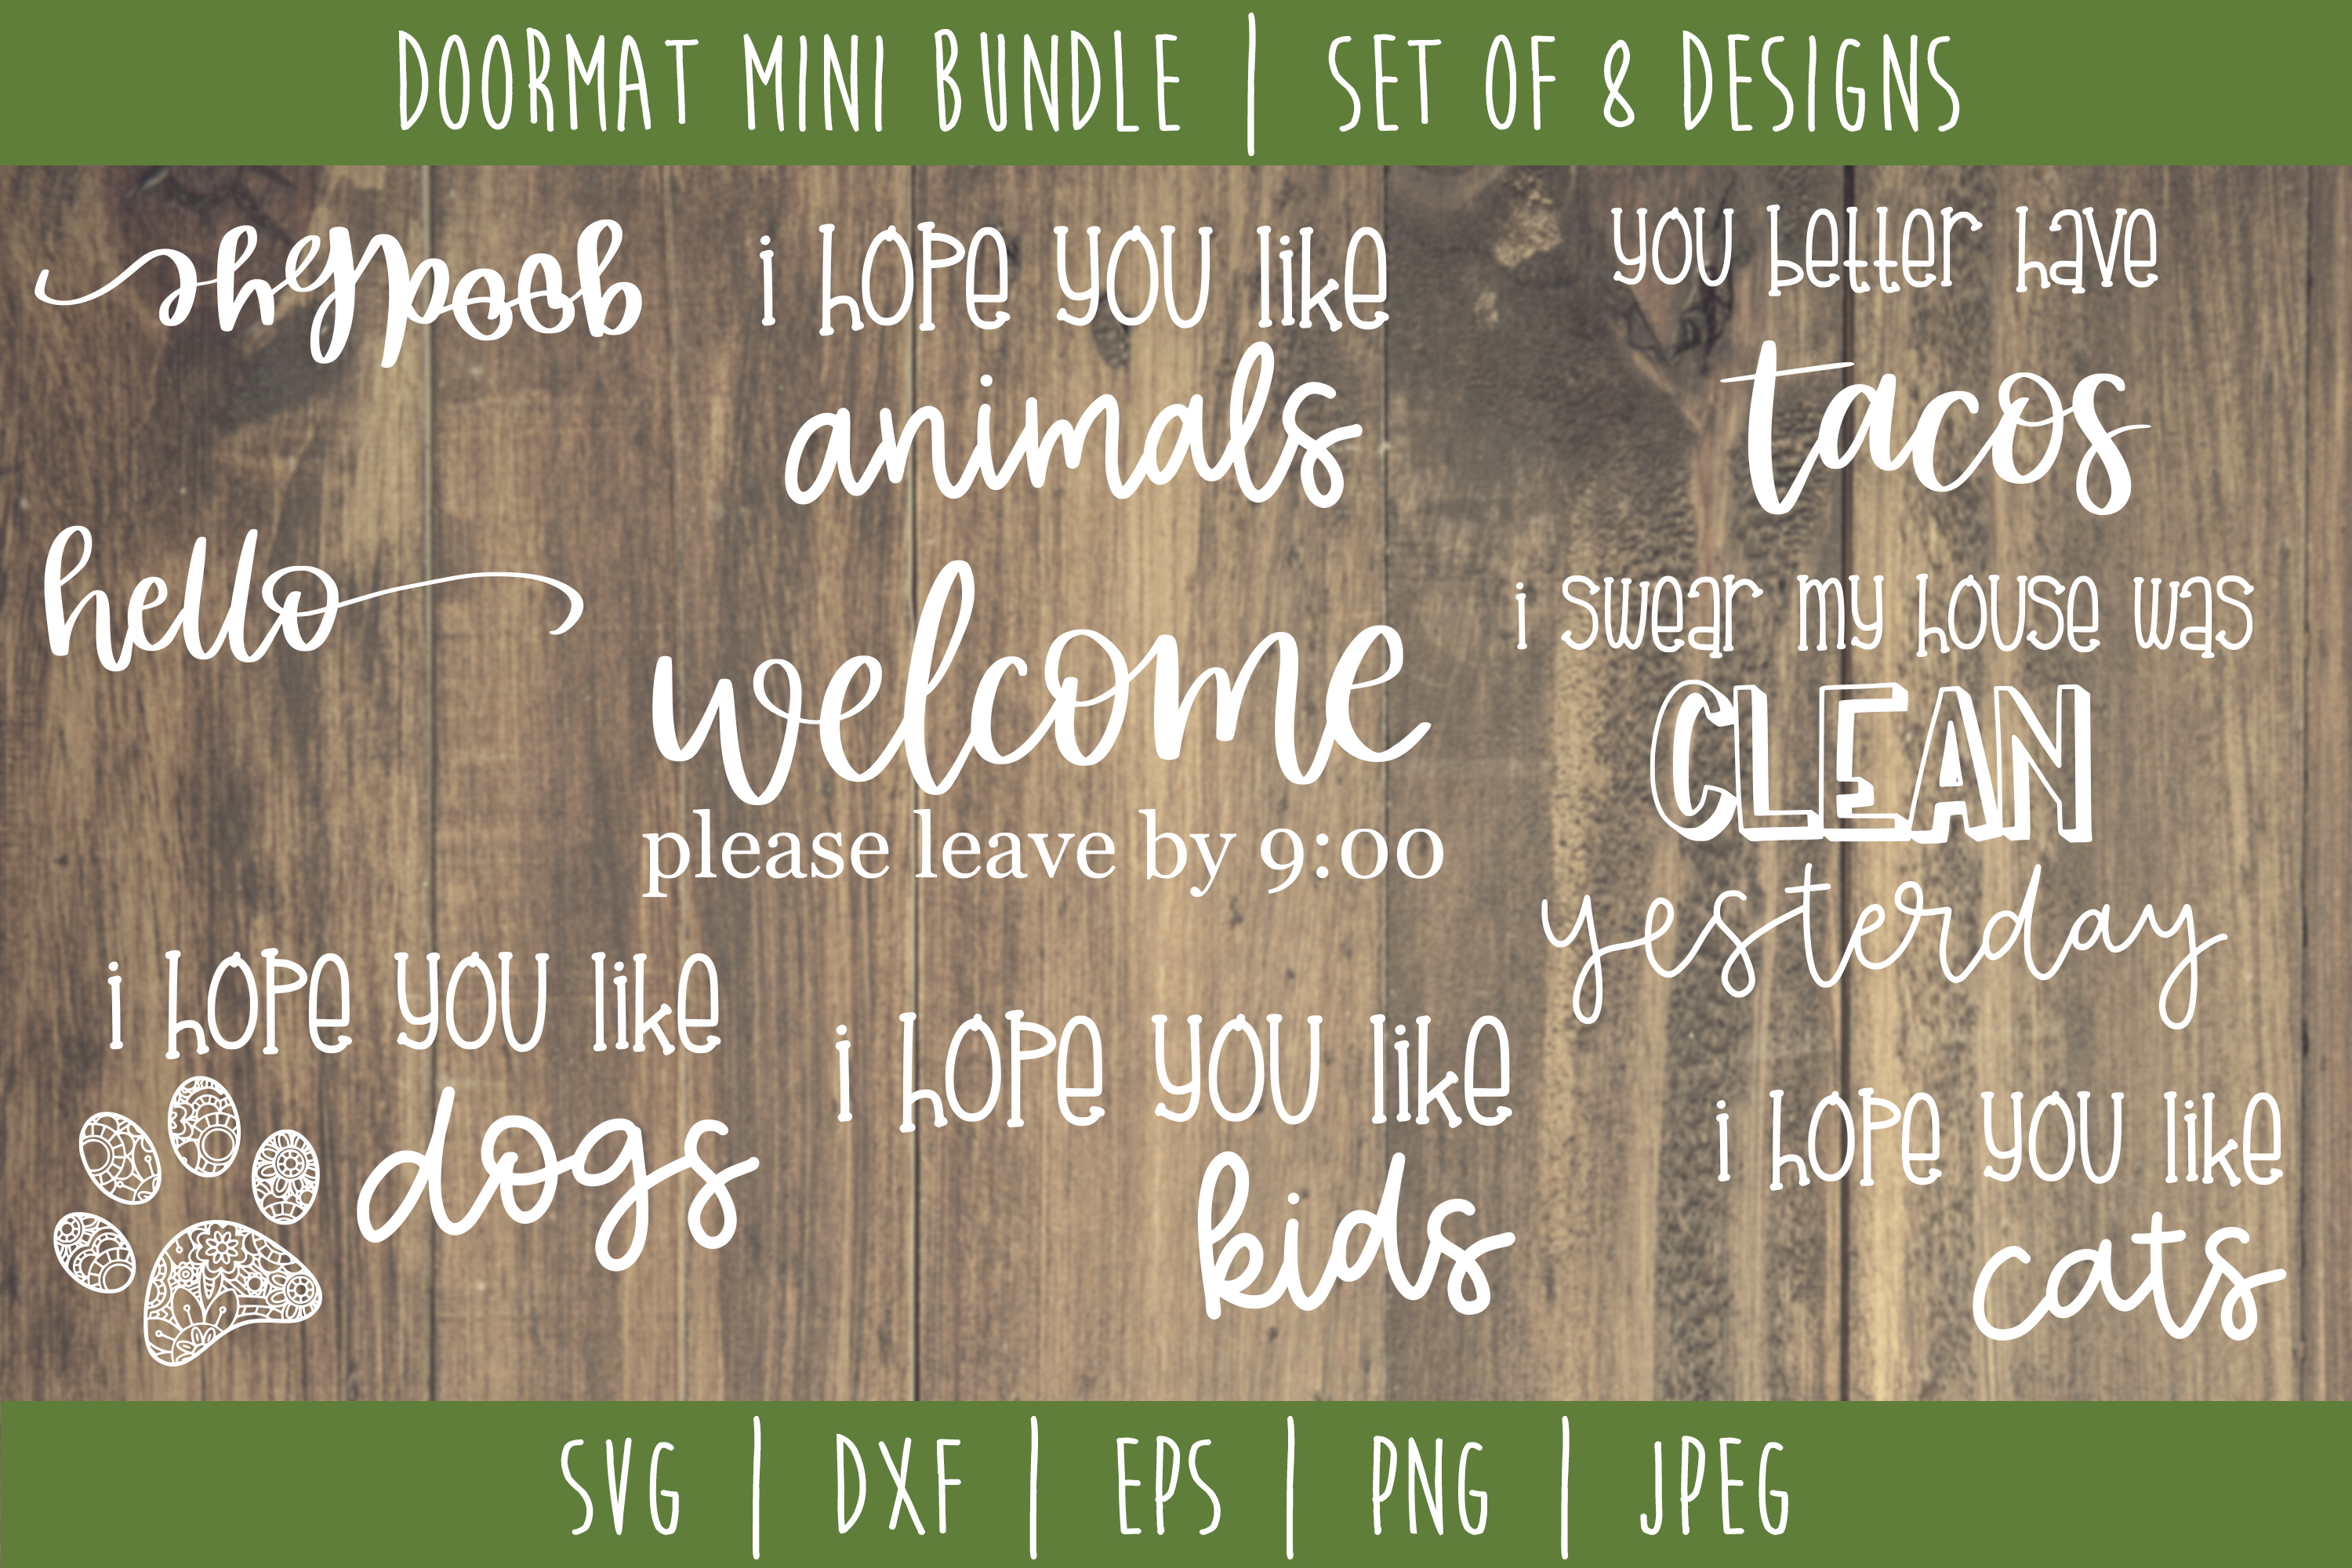 Doormat Bundle Set of 8 - SVG example image 1